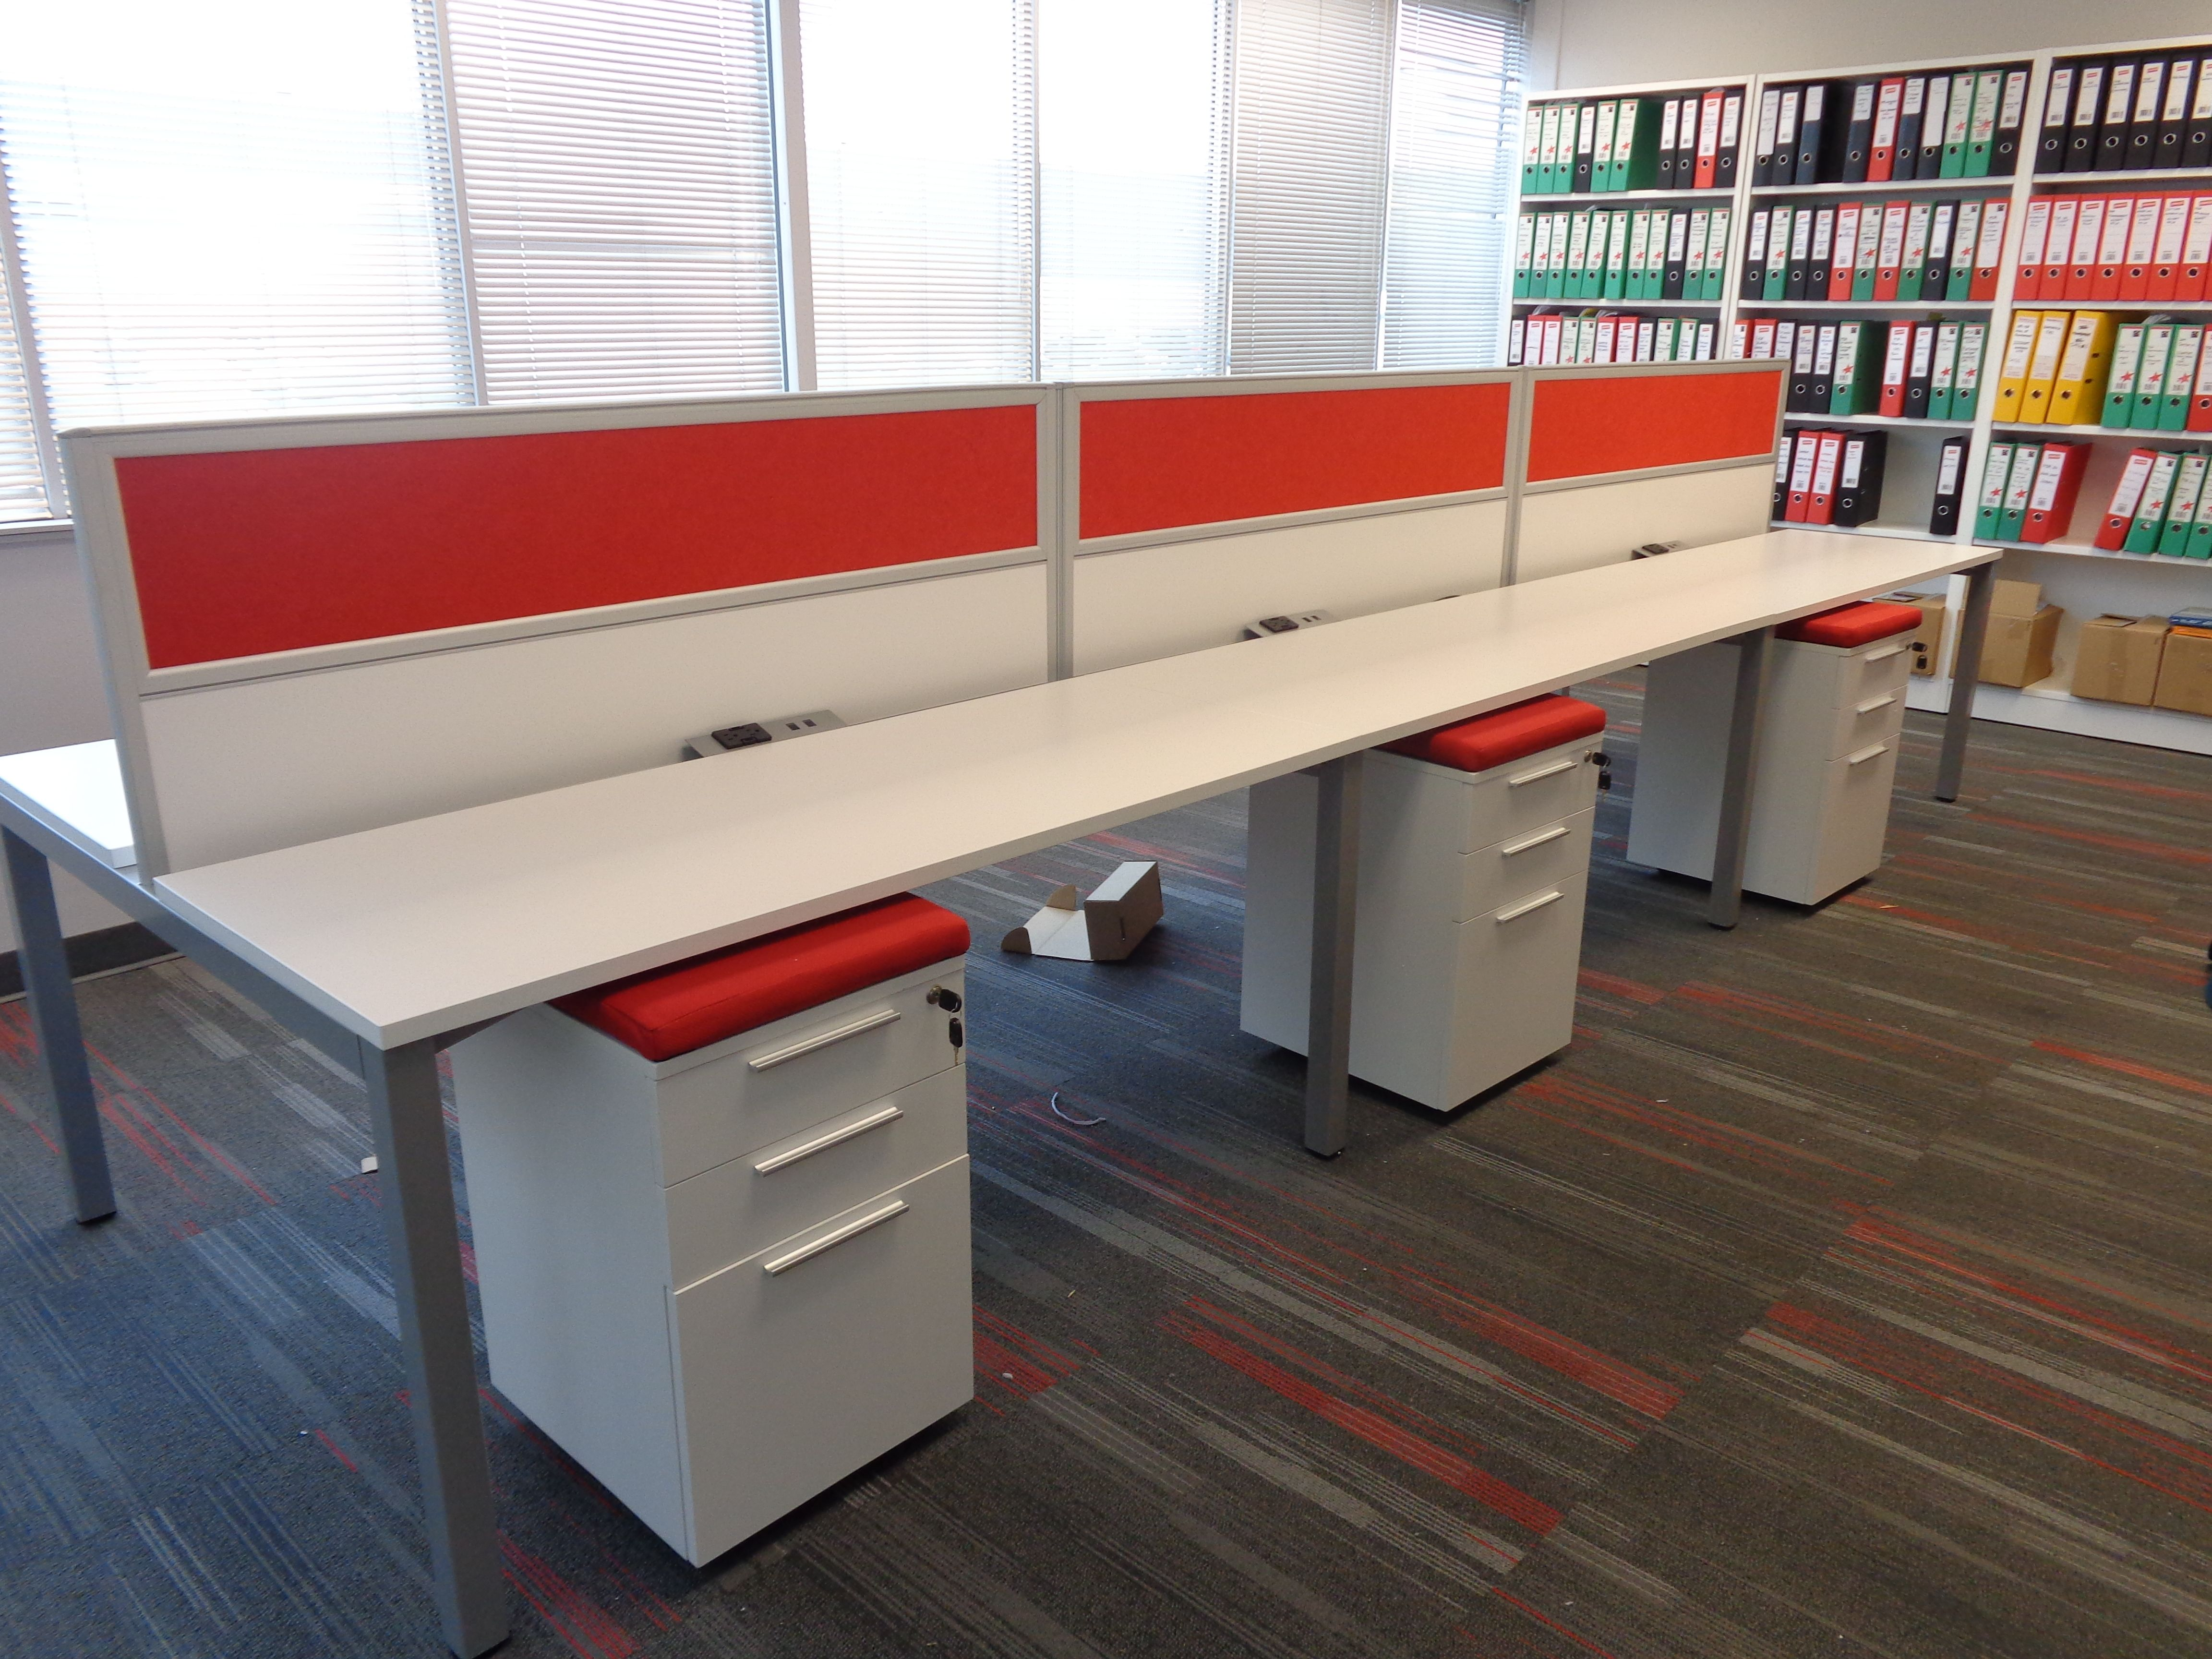 Pin De Fodc_elite En Office Layout Pinterest # Muebles Modulares Para Oficina